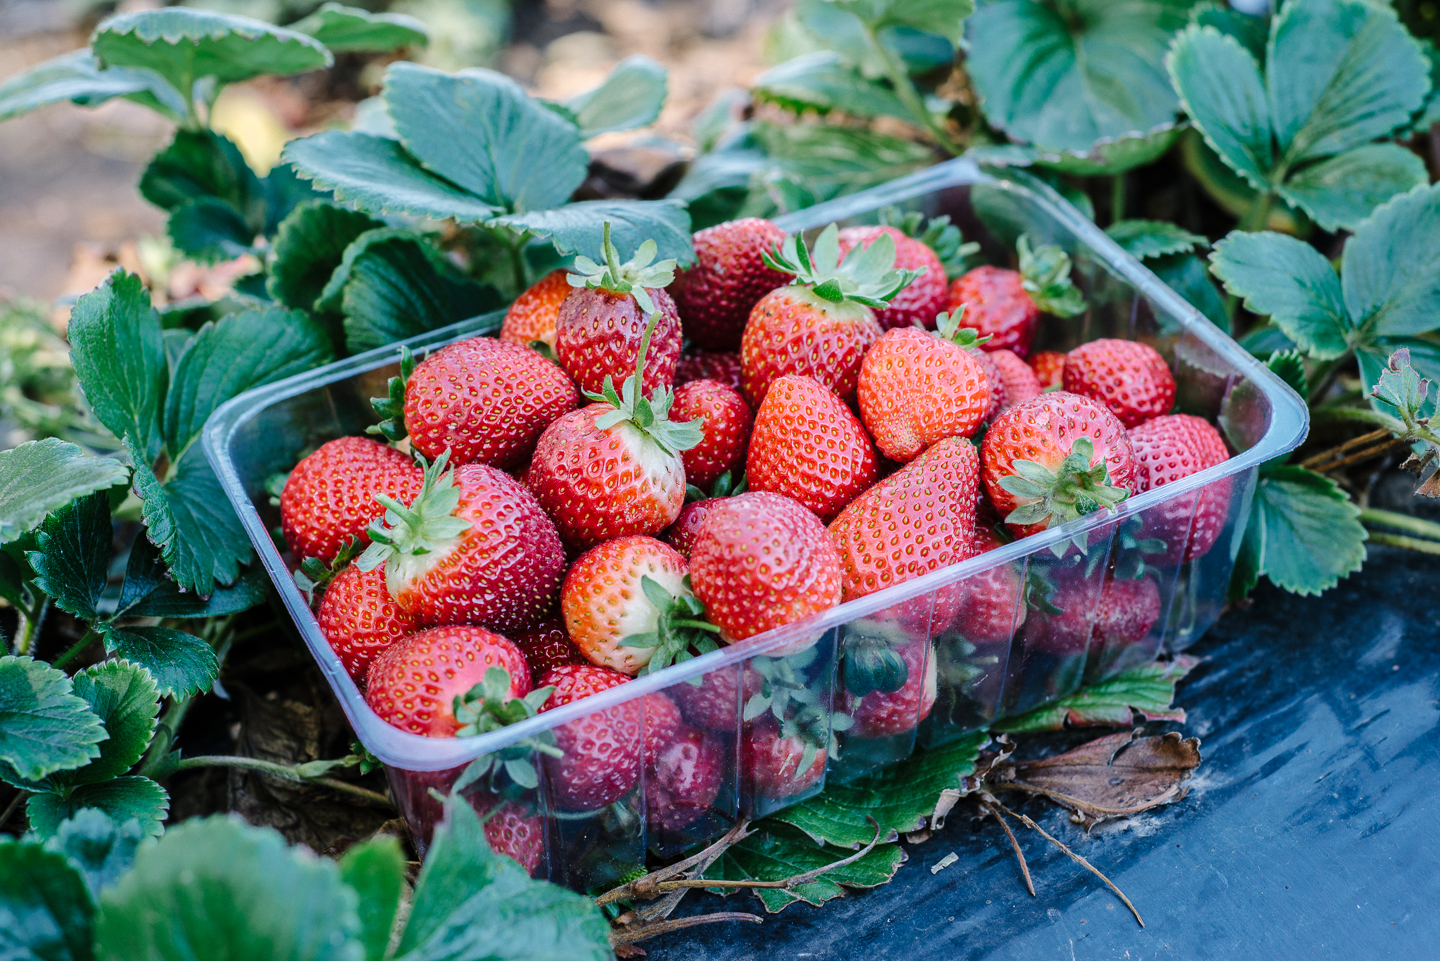 Strawberries at the Beerenberg Strawberry Farm 2 by Christina Soong